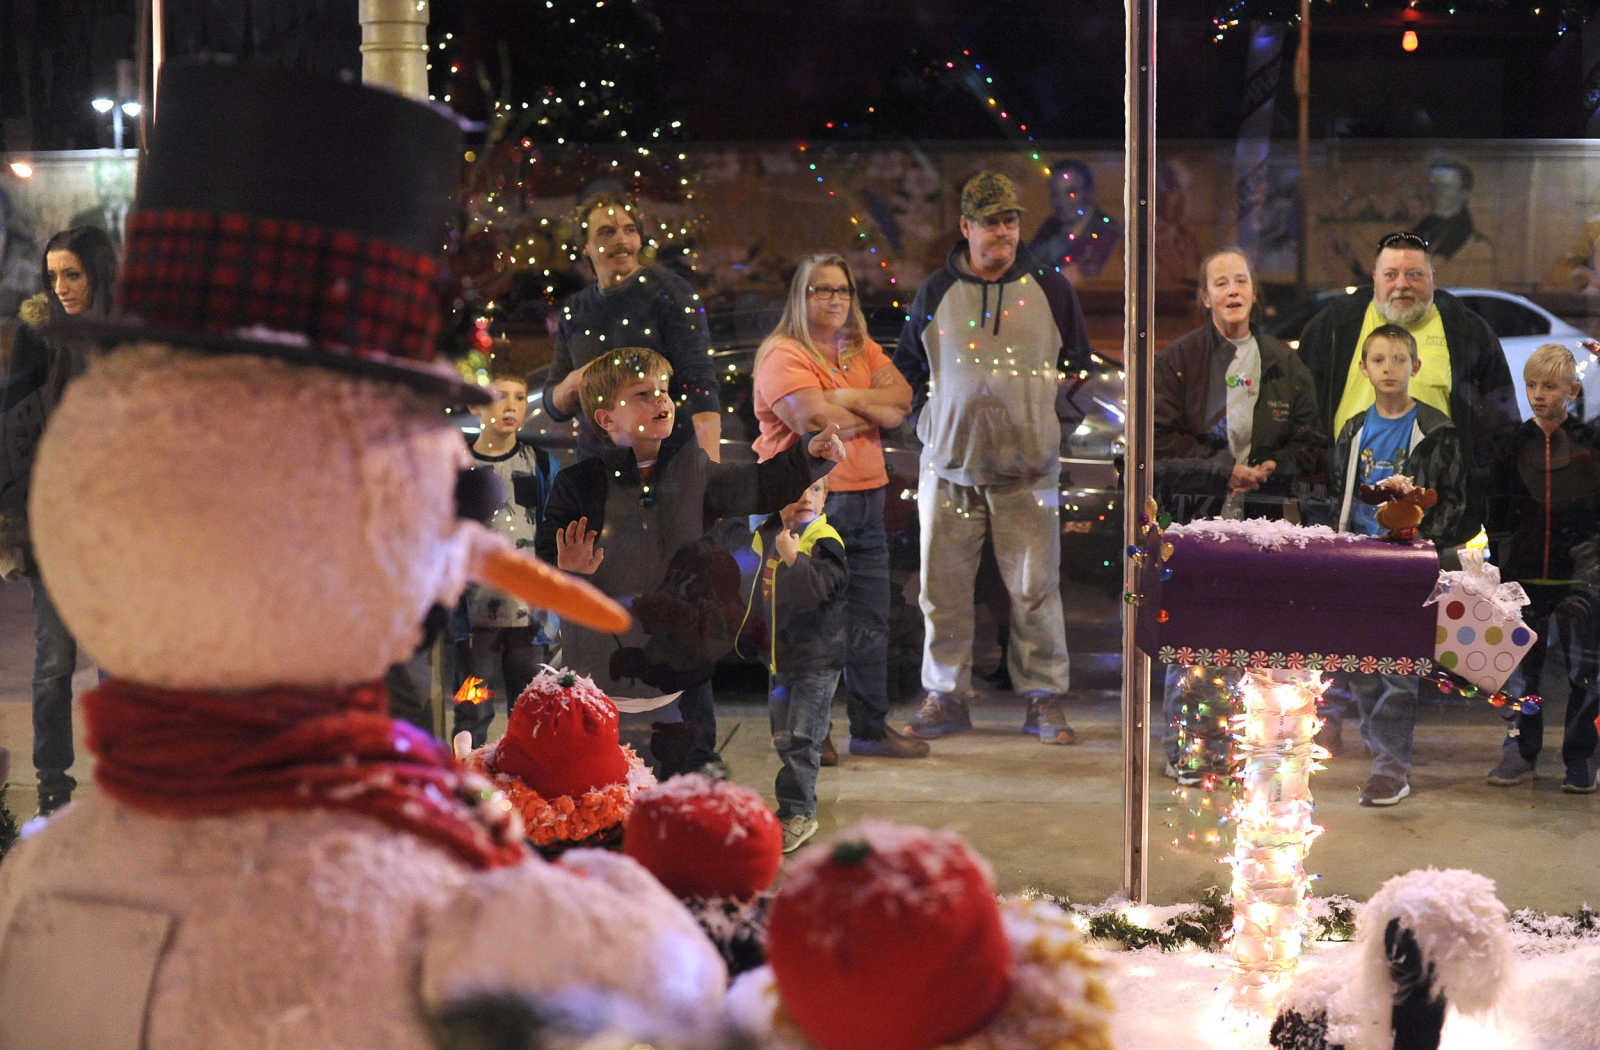 People Gather To View The Animated Christmas Window Display Thursday, Nov.  23, 2017 At Hutsonu0027s Fine Furniture In Downtown Cape Girardeau. (Fred Lynch)